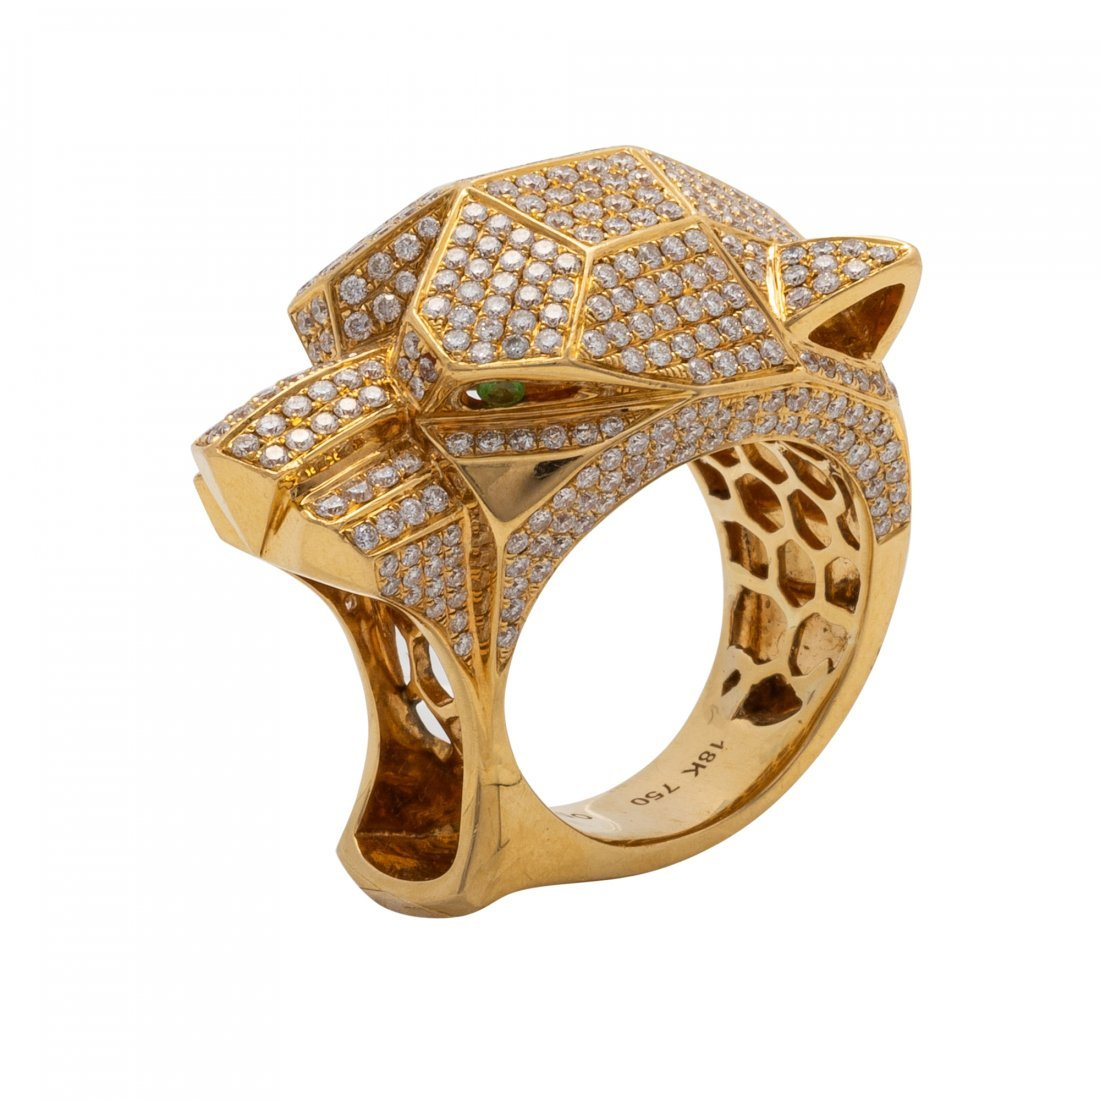 Interesting Gold and Diamond Ring